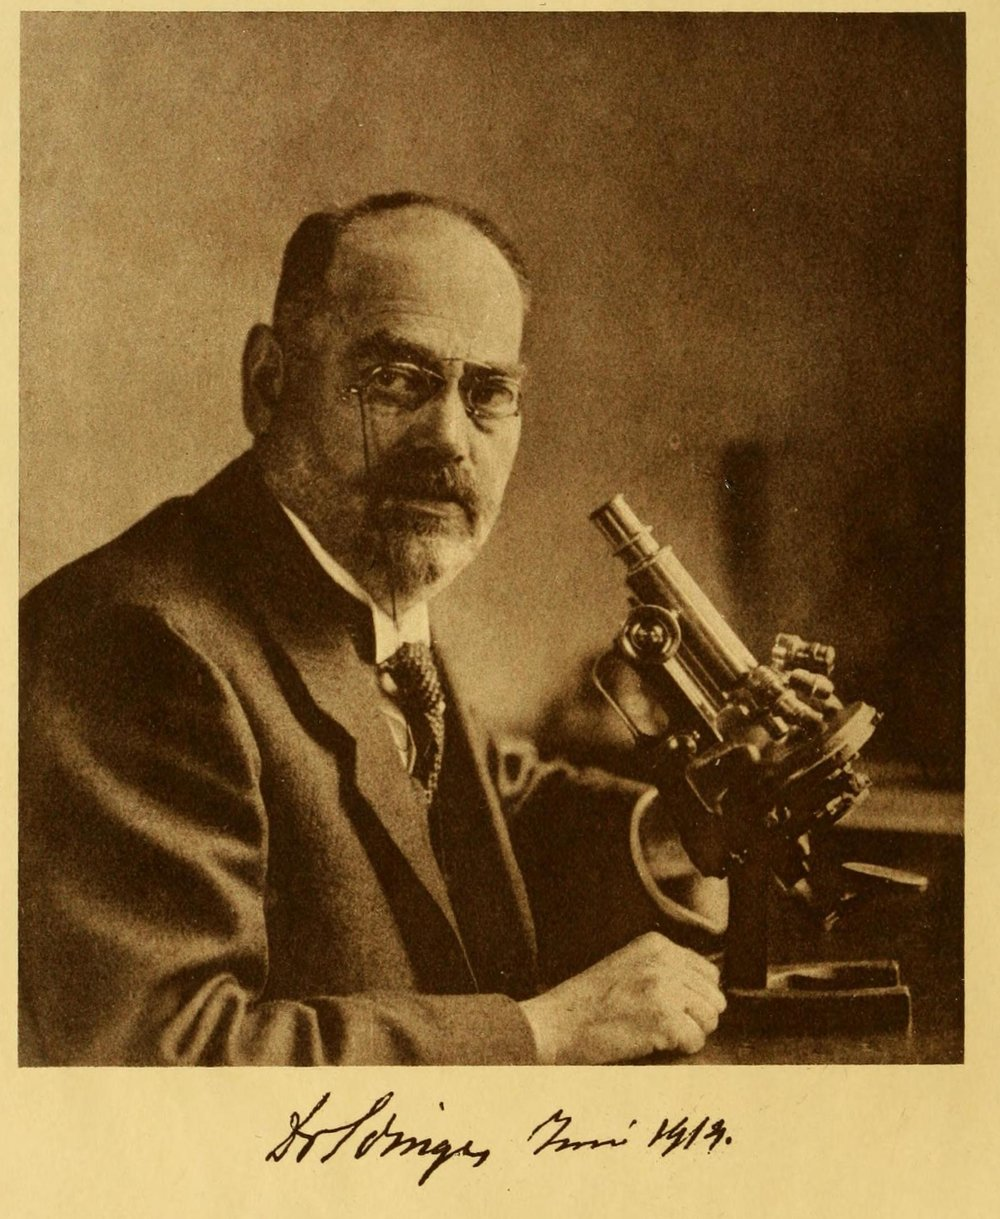 Tilly Edinger's father, neurologist Ludwig Edinger